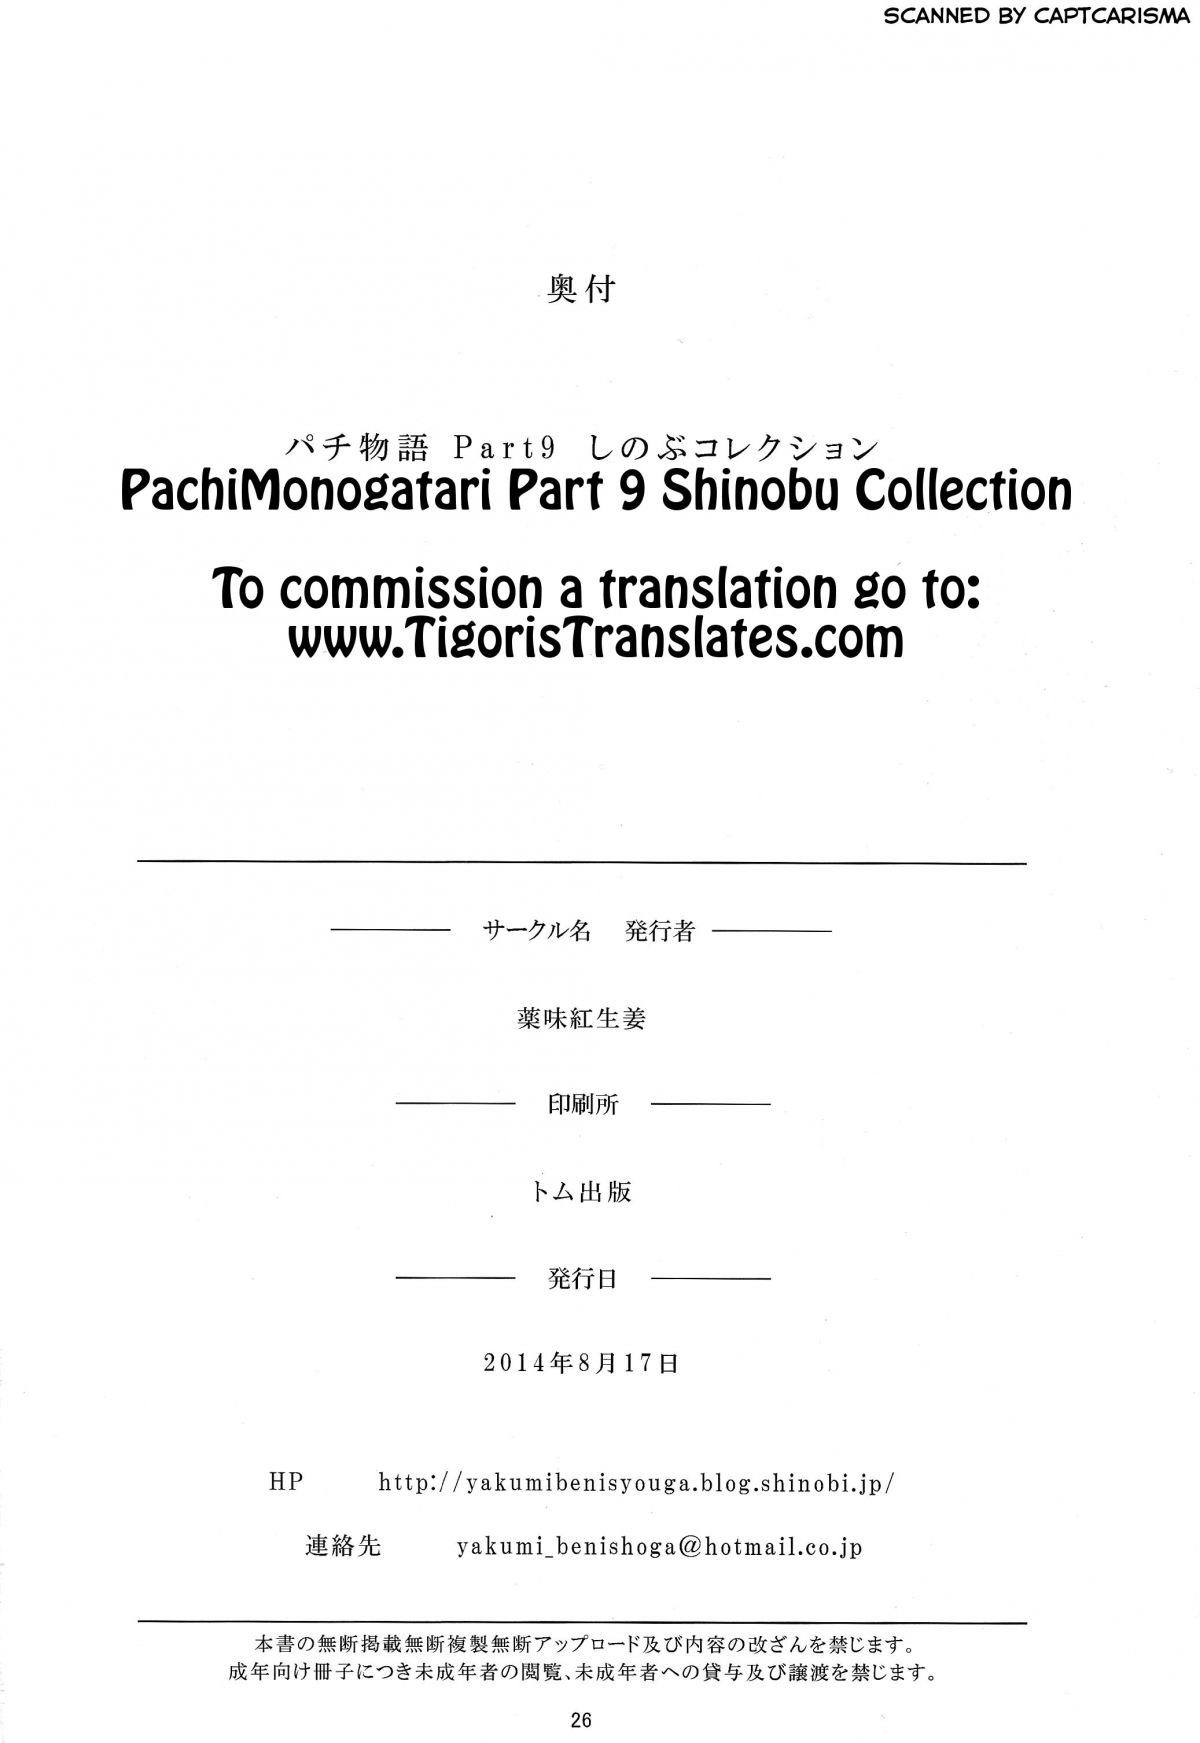 HentaiVN.net - Ảnh 27 - Pachimonogatari: Shinobu Collection (Bakemonogatari) - Oneshot